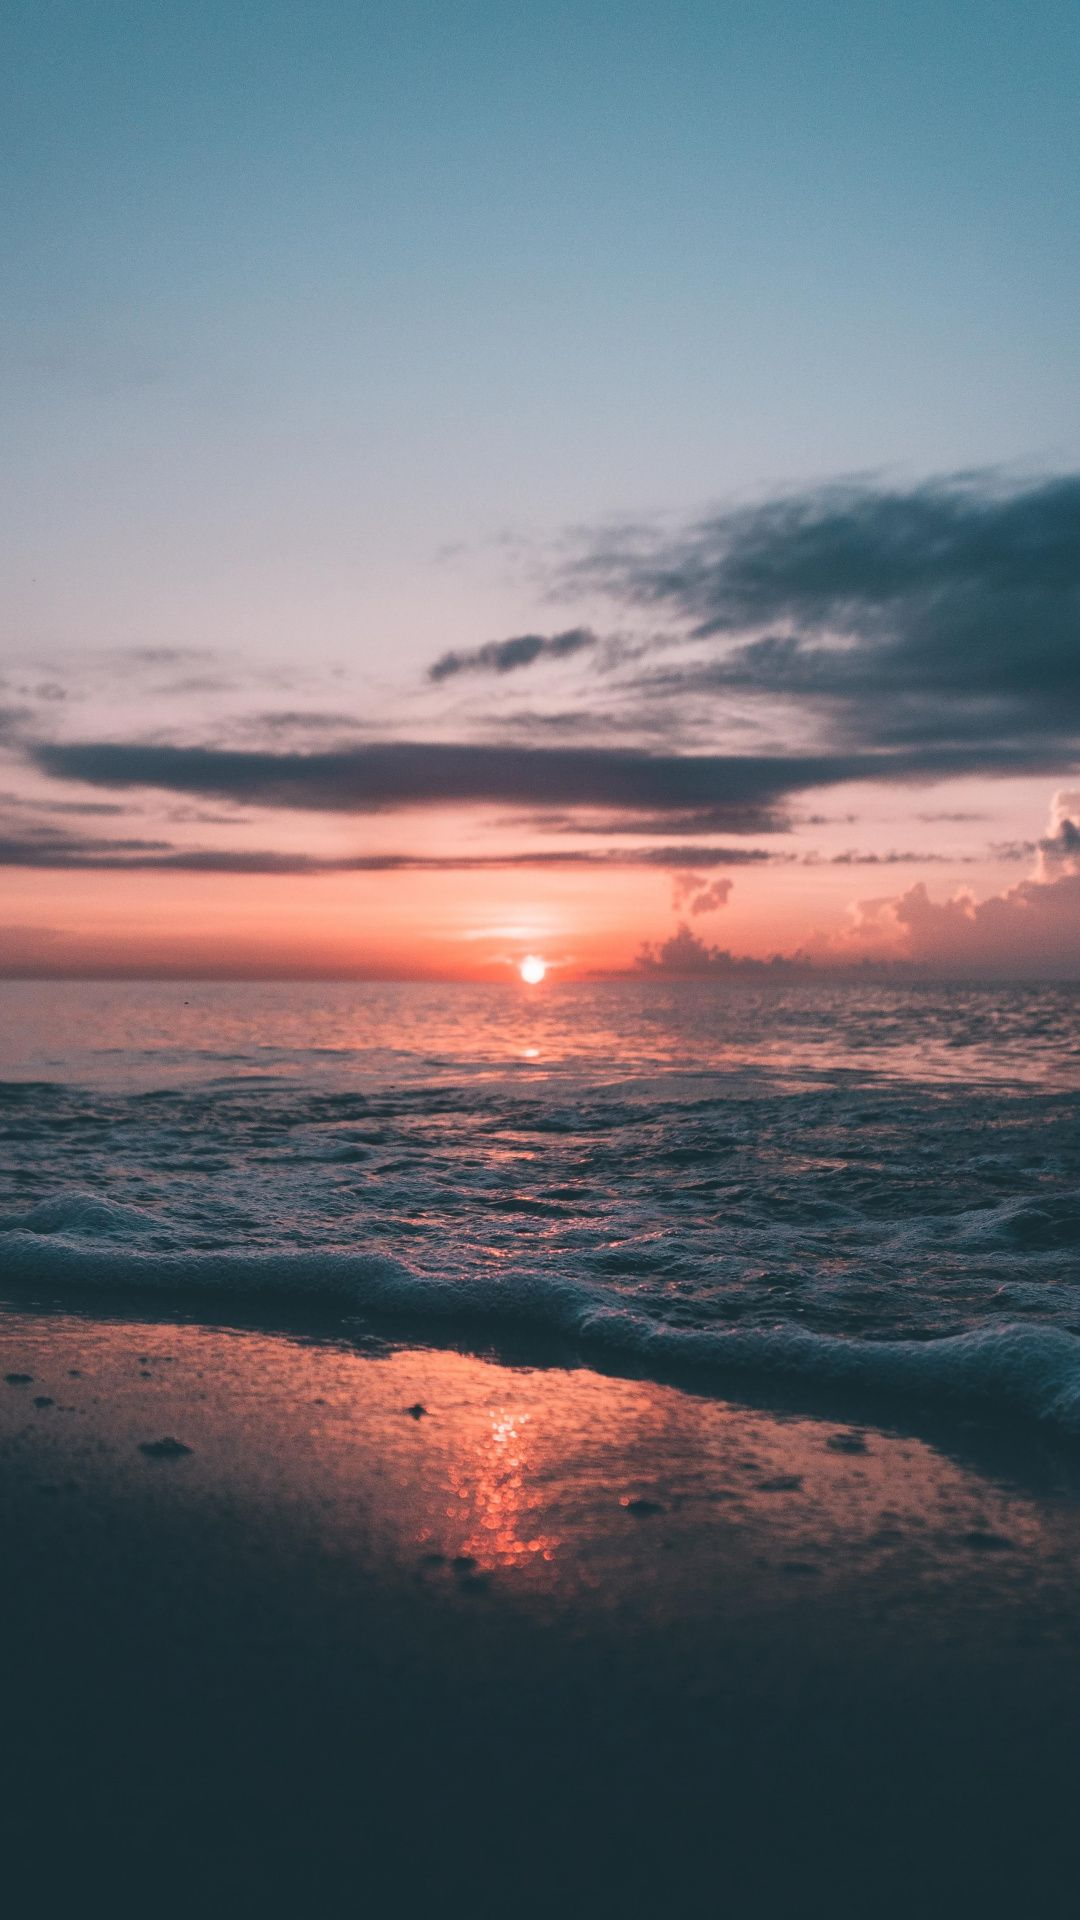 Soft Sea Wave Close Up Sunset Nature 1080x1920 Wallpaper Sky Aesthetic Nature Pictures Sunset Wallpaper